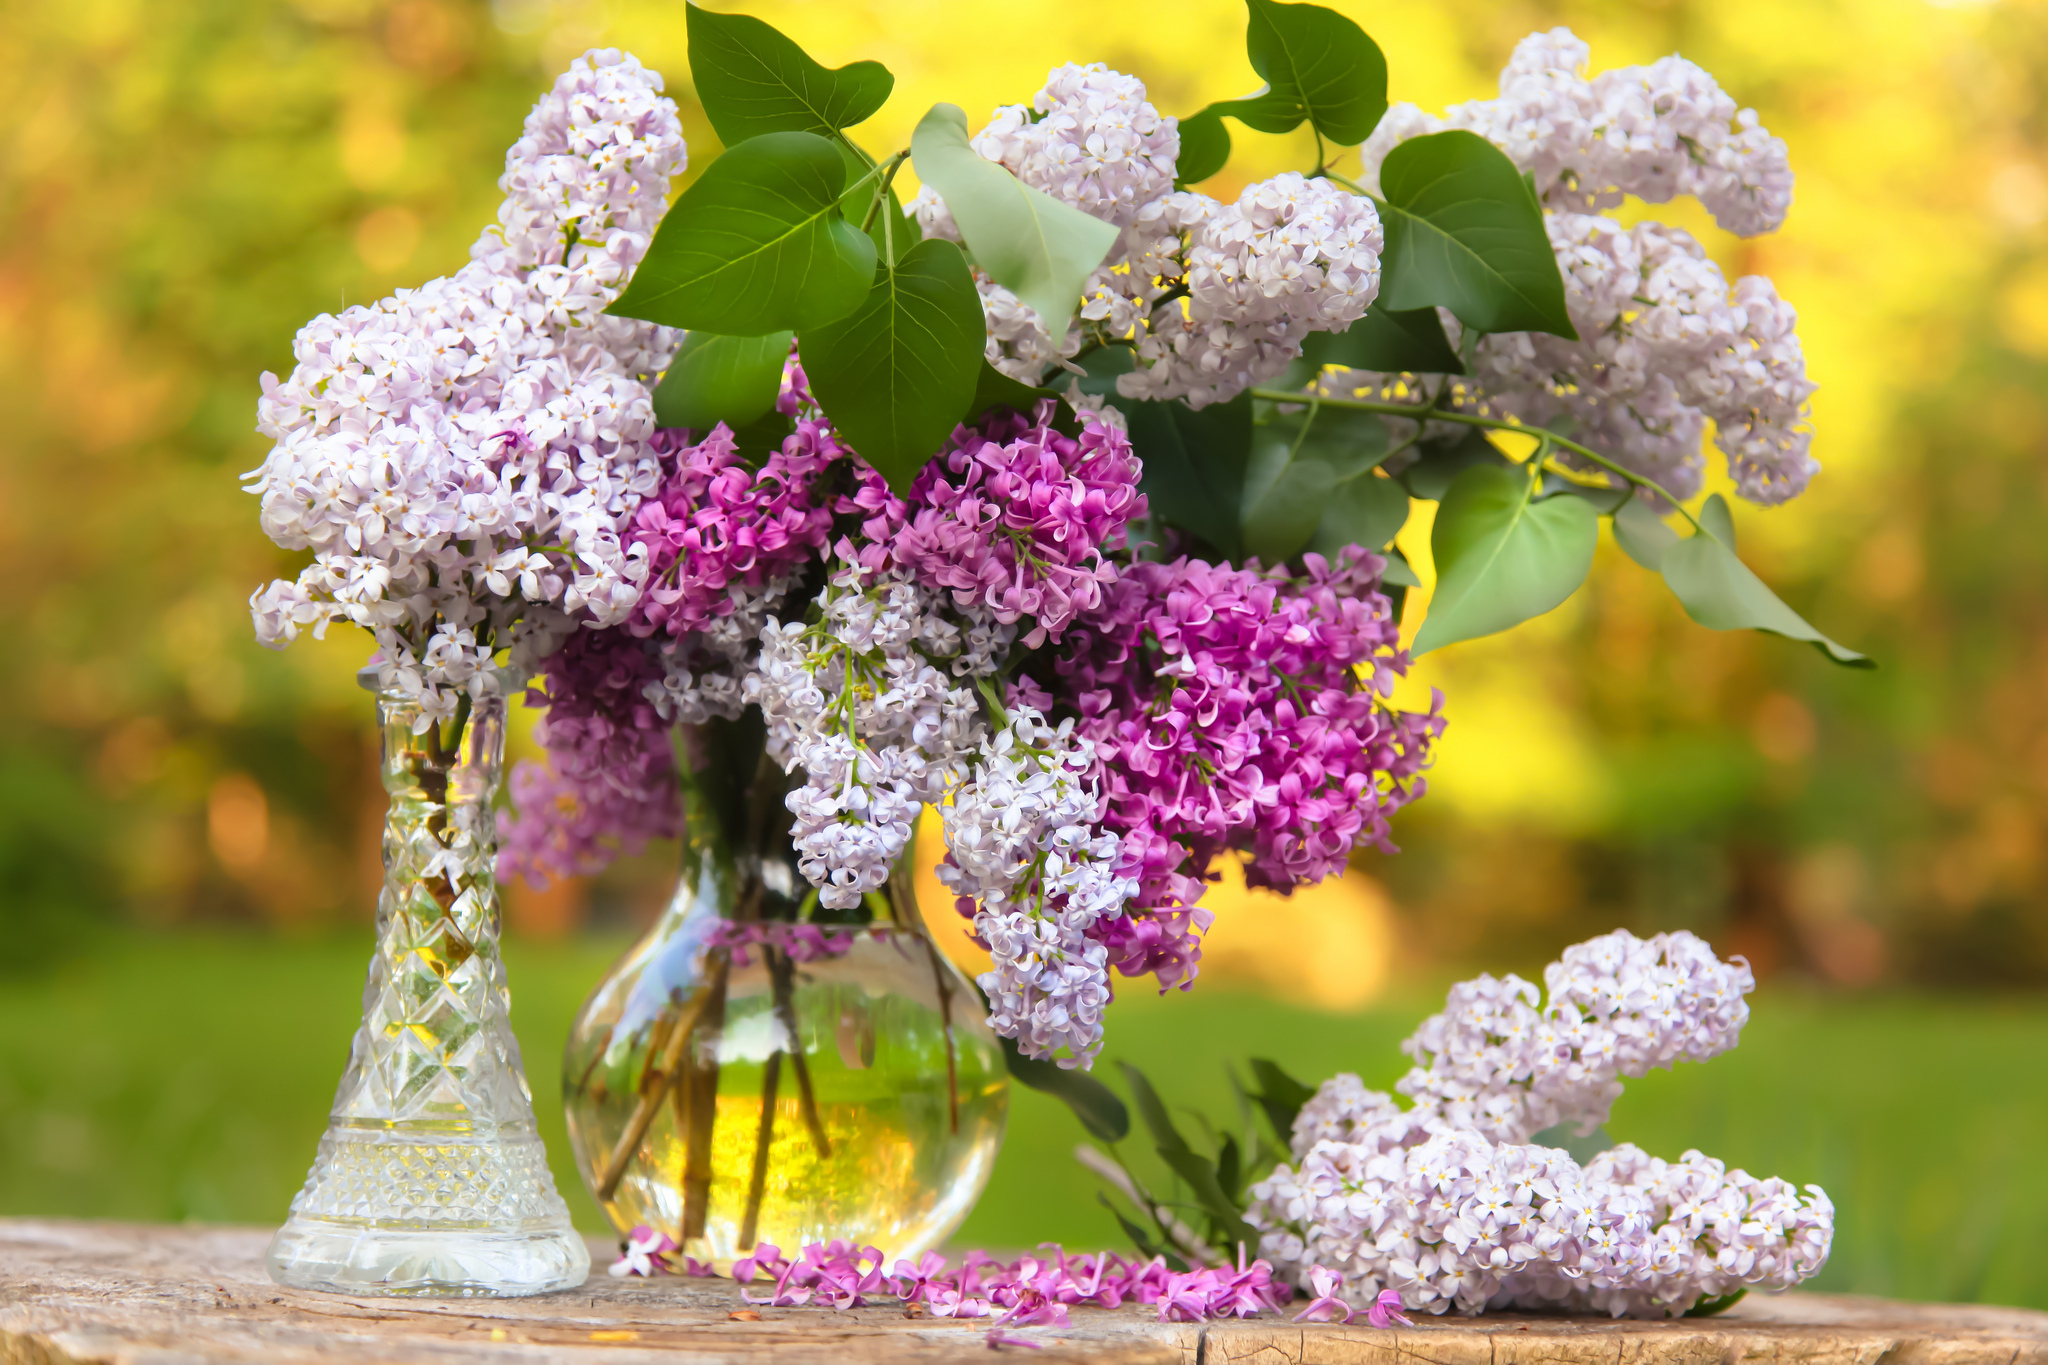 lilac bouquet vase bokeh wallpaper 2048x1365 162849. Black Bedroom Furniture Sets. Home Design Ideas